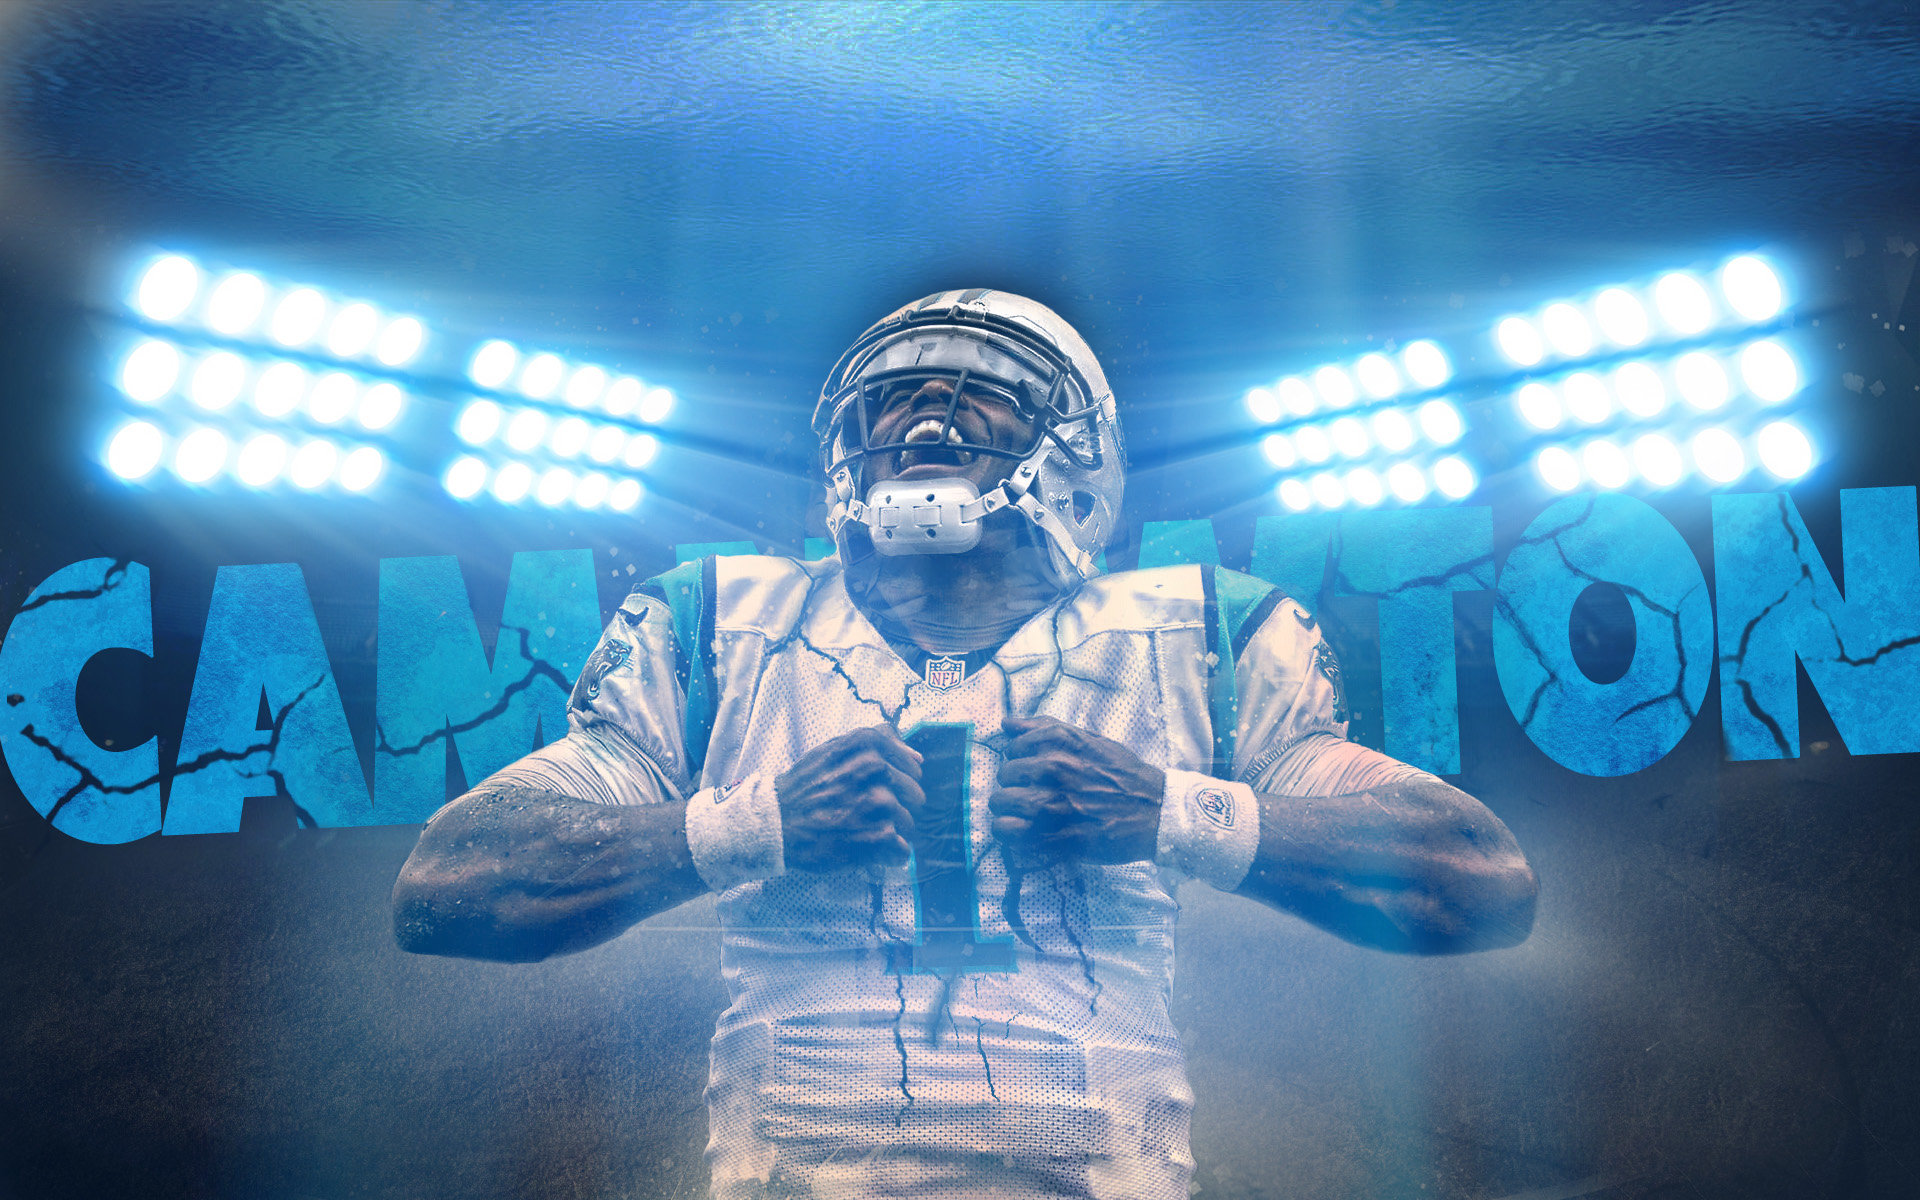 Download hd 1920x1200 Cam Newton desktop background ID:57594 for free